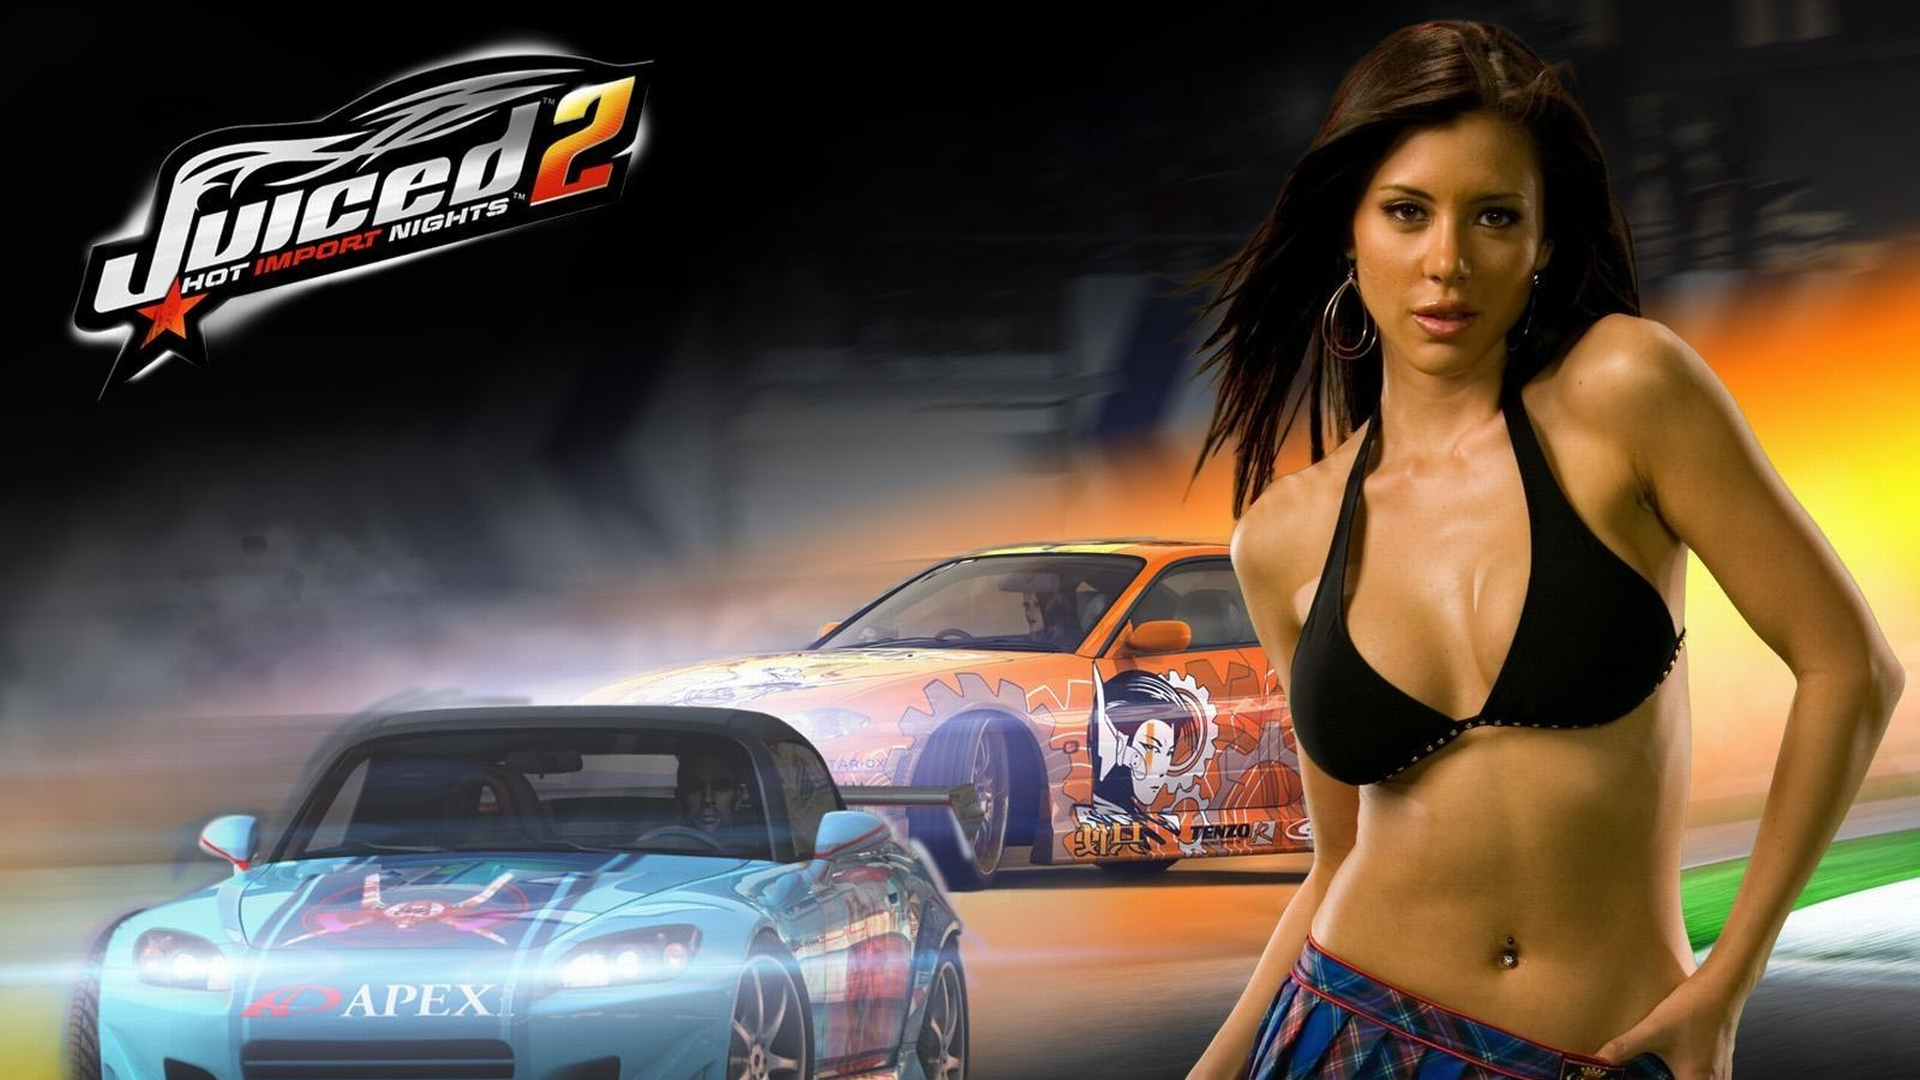 Grand Theft Auto Wallpaper Girl 2 Juiced Hd Wallpapers Background Images Wallpaper Abyss